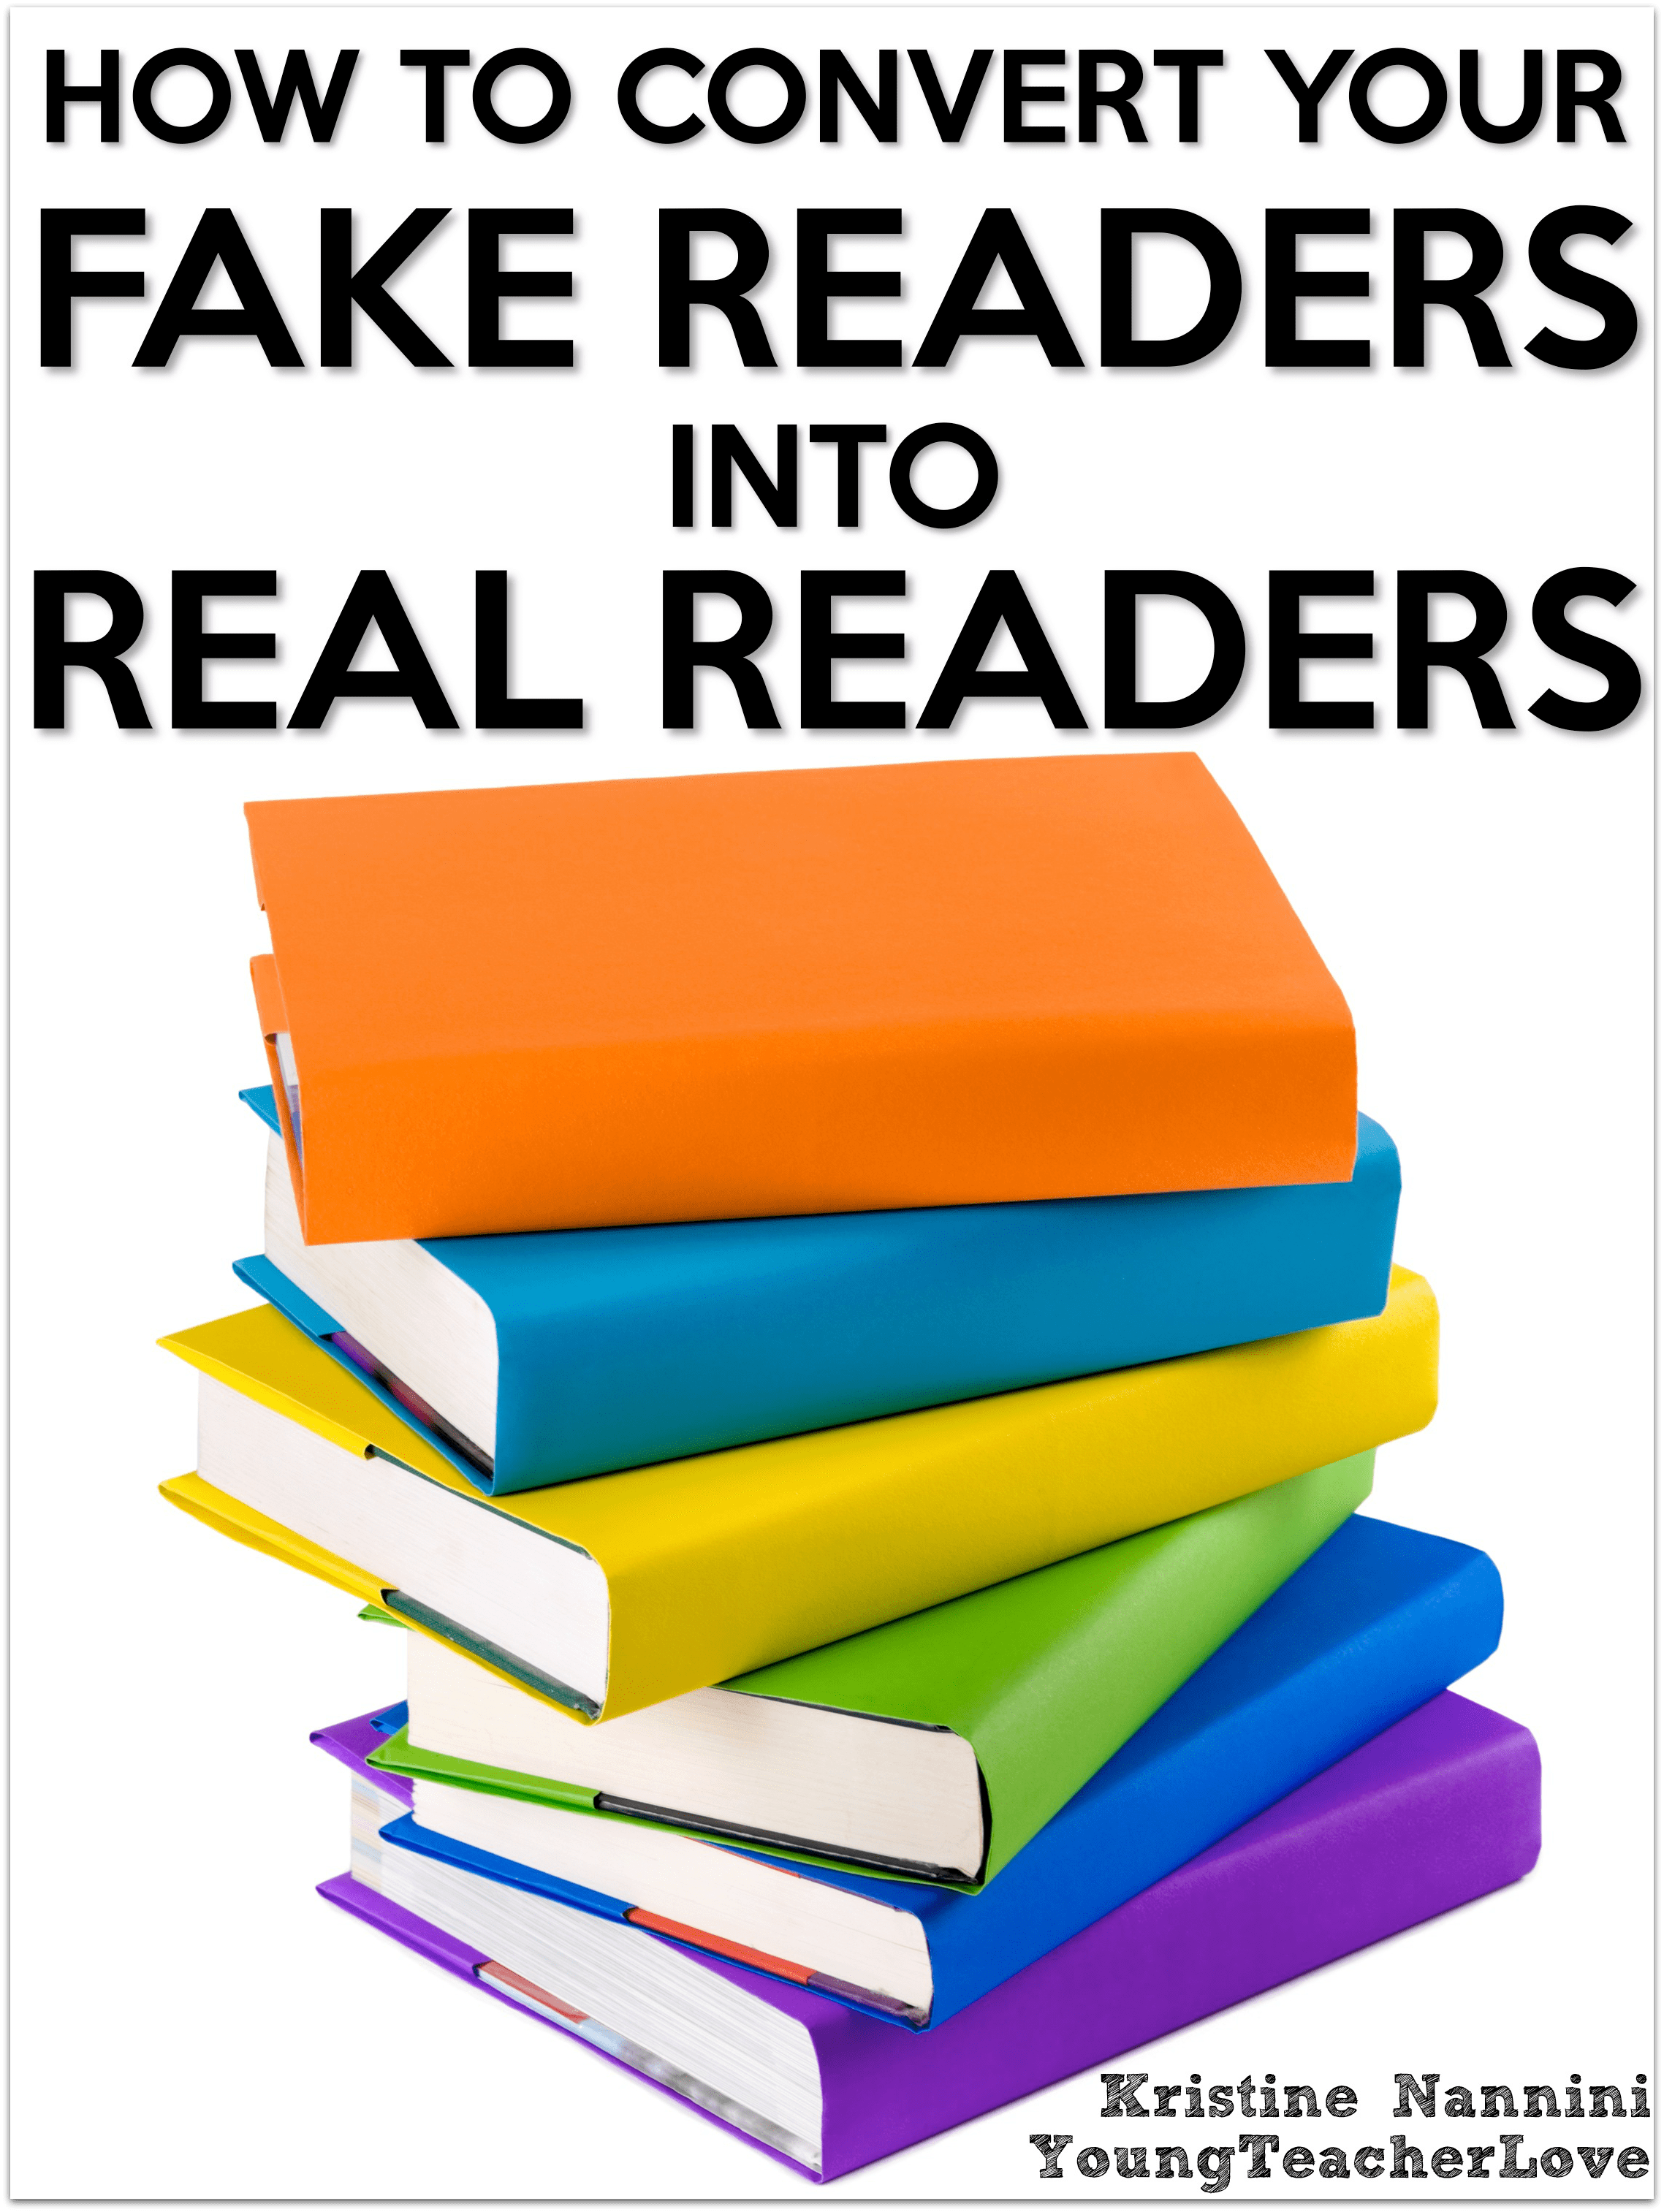 How To Convert Your Fake Readers Into Real Readers